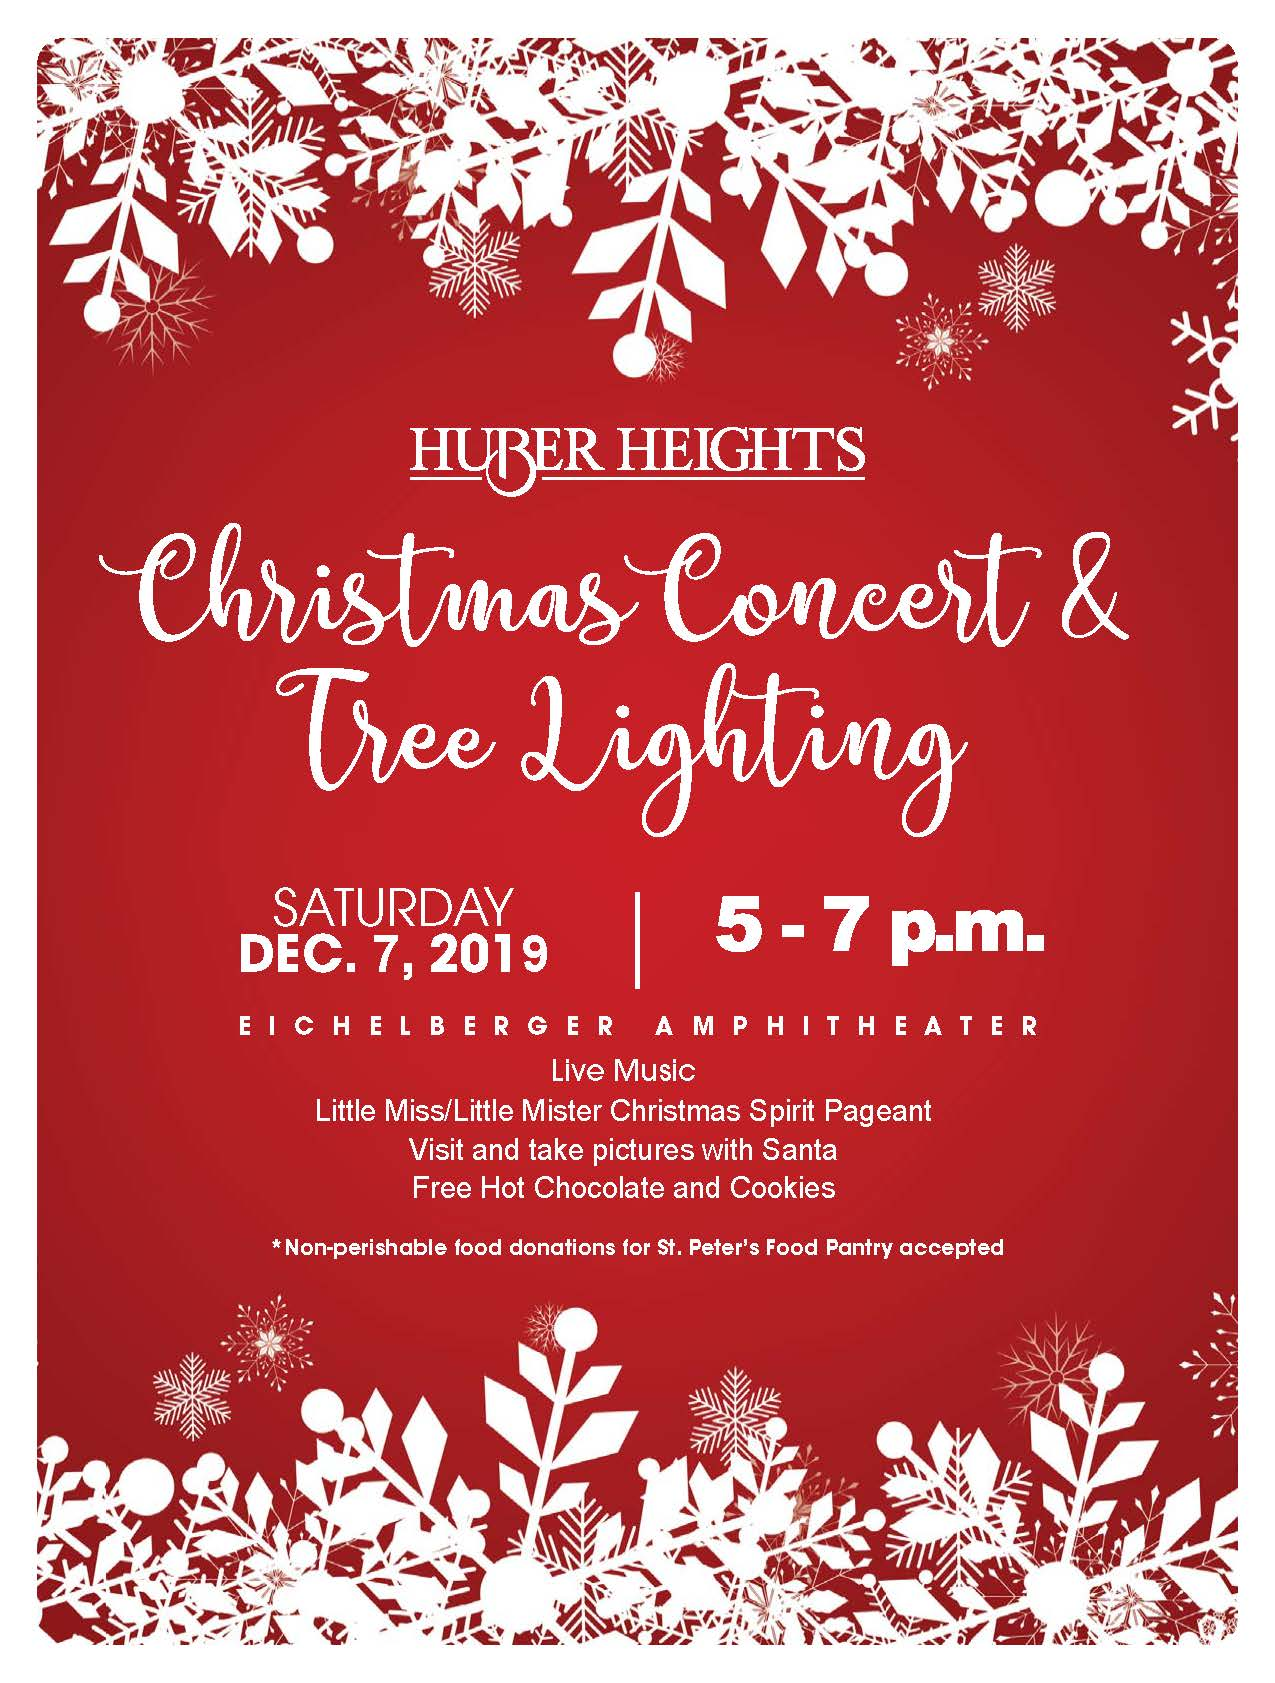 Christmas Concert and Tree Lighting @ Eichelberger Amptheater | Dayton | Ohio | United States